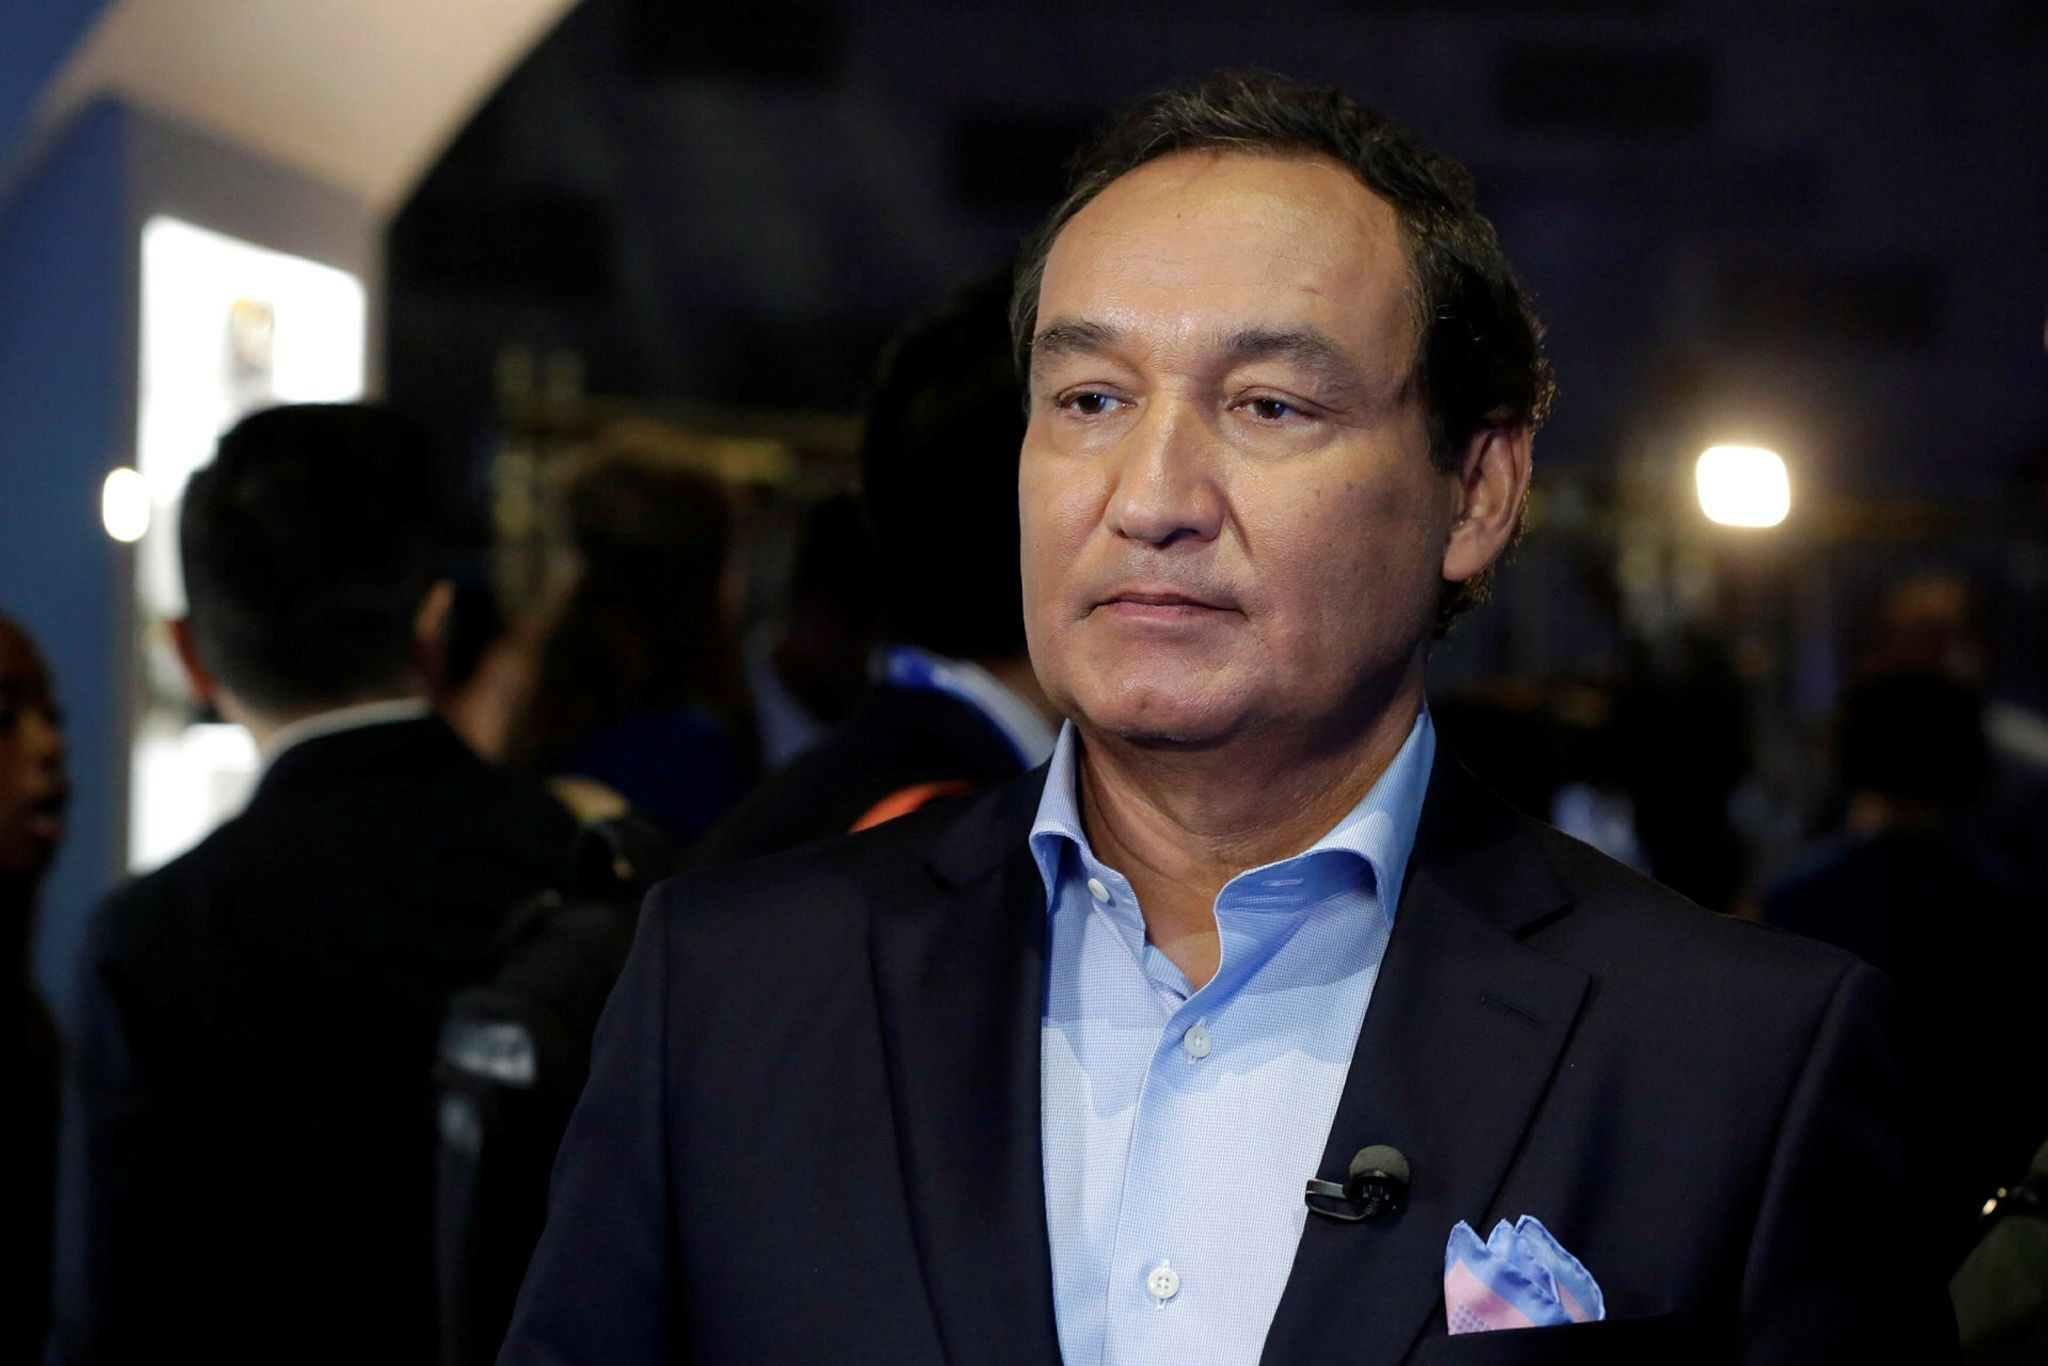 United Airlines CEO Oscar Munoz waits to be interviewed, in New York. (AP Photo)